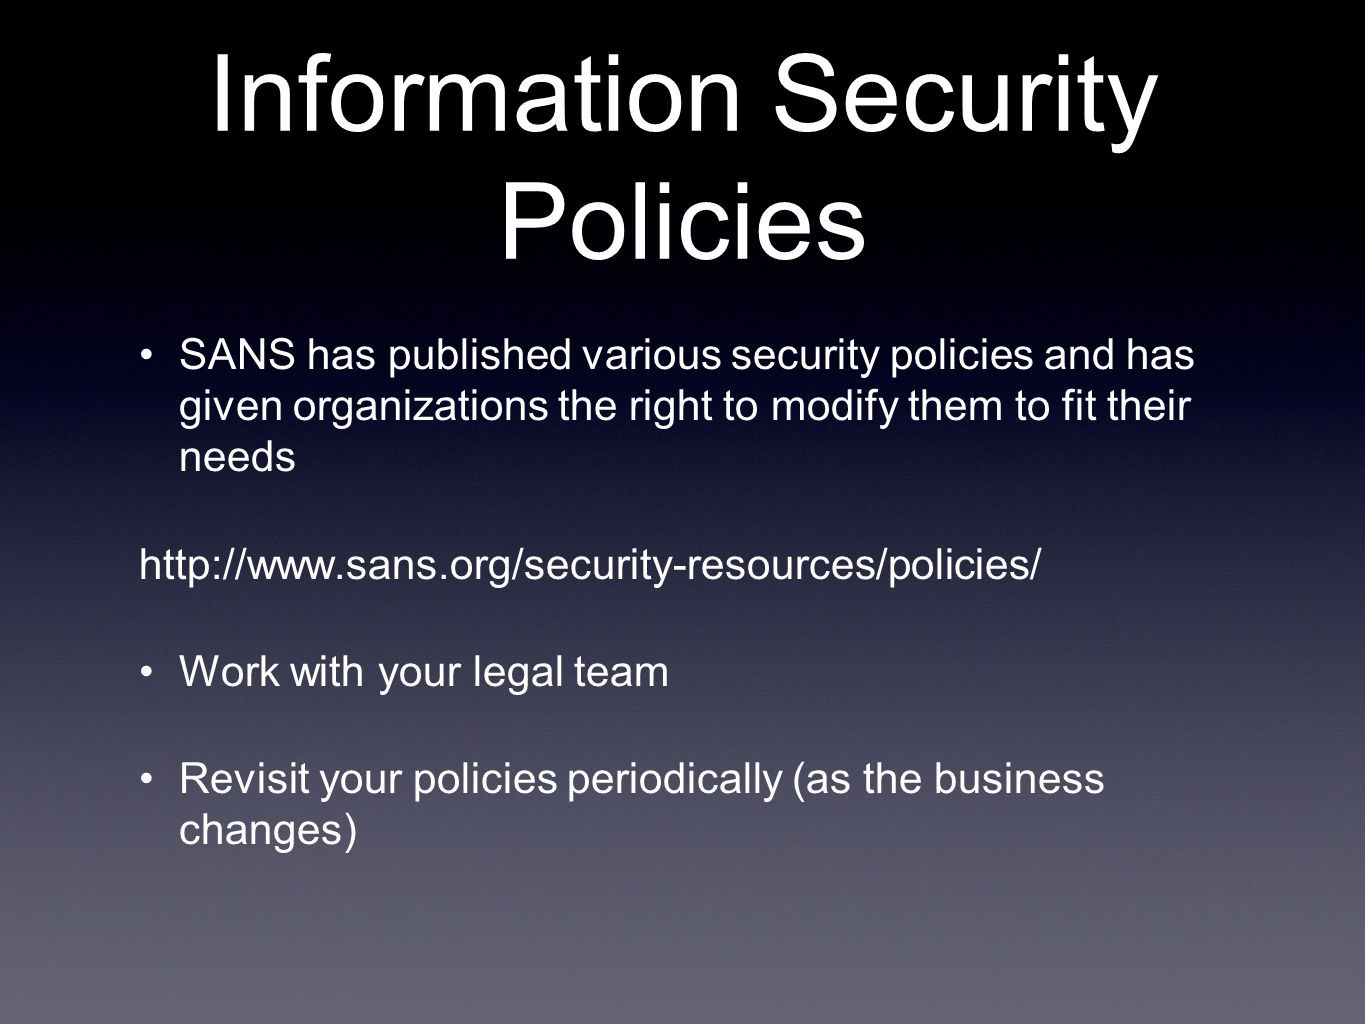 Information Security Policies SANS has published various security policies and has given organizations the right to modify them to fit their needs http://www.sans.org/security-resources/policies/ Work with your legal team Revisit your policies periodically (as the business changes)